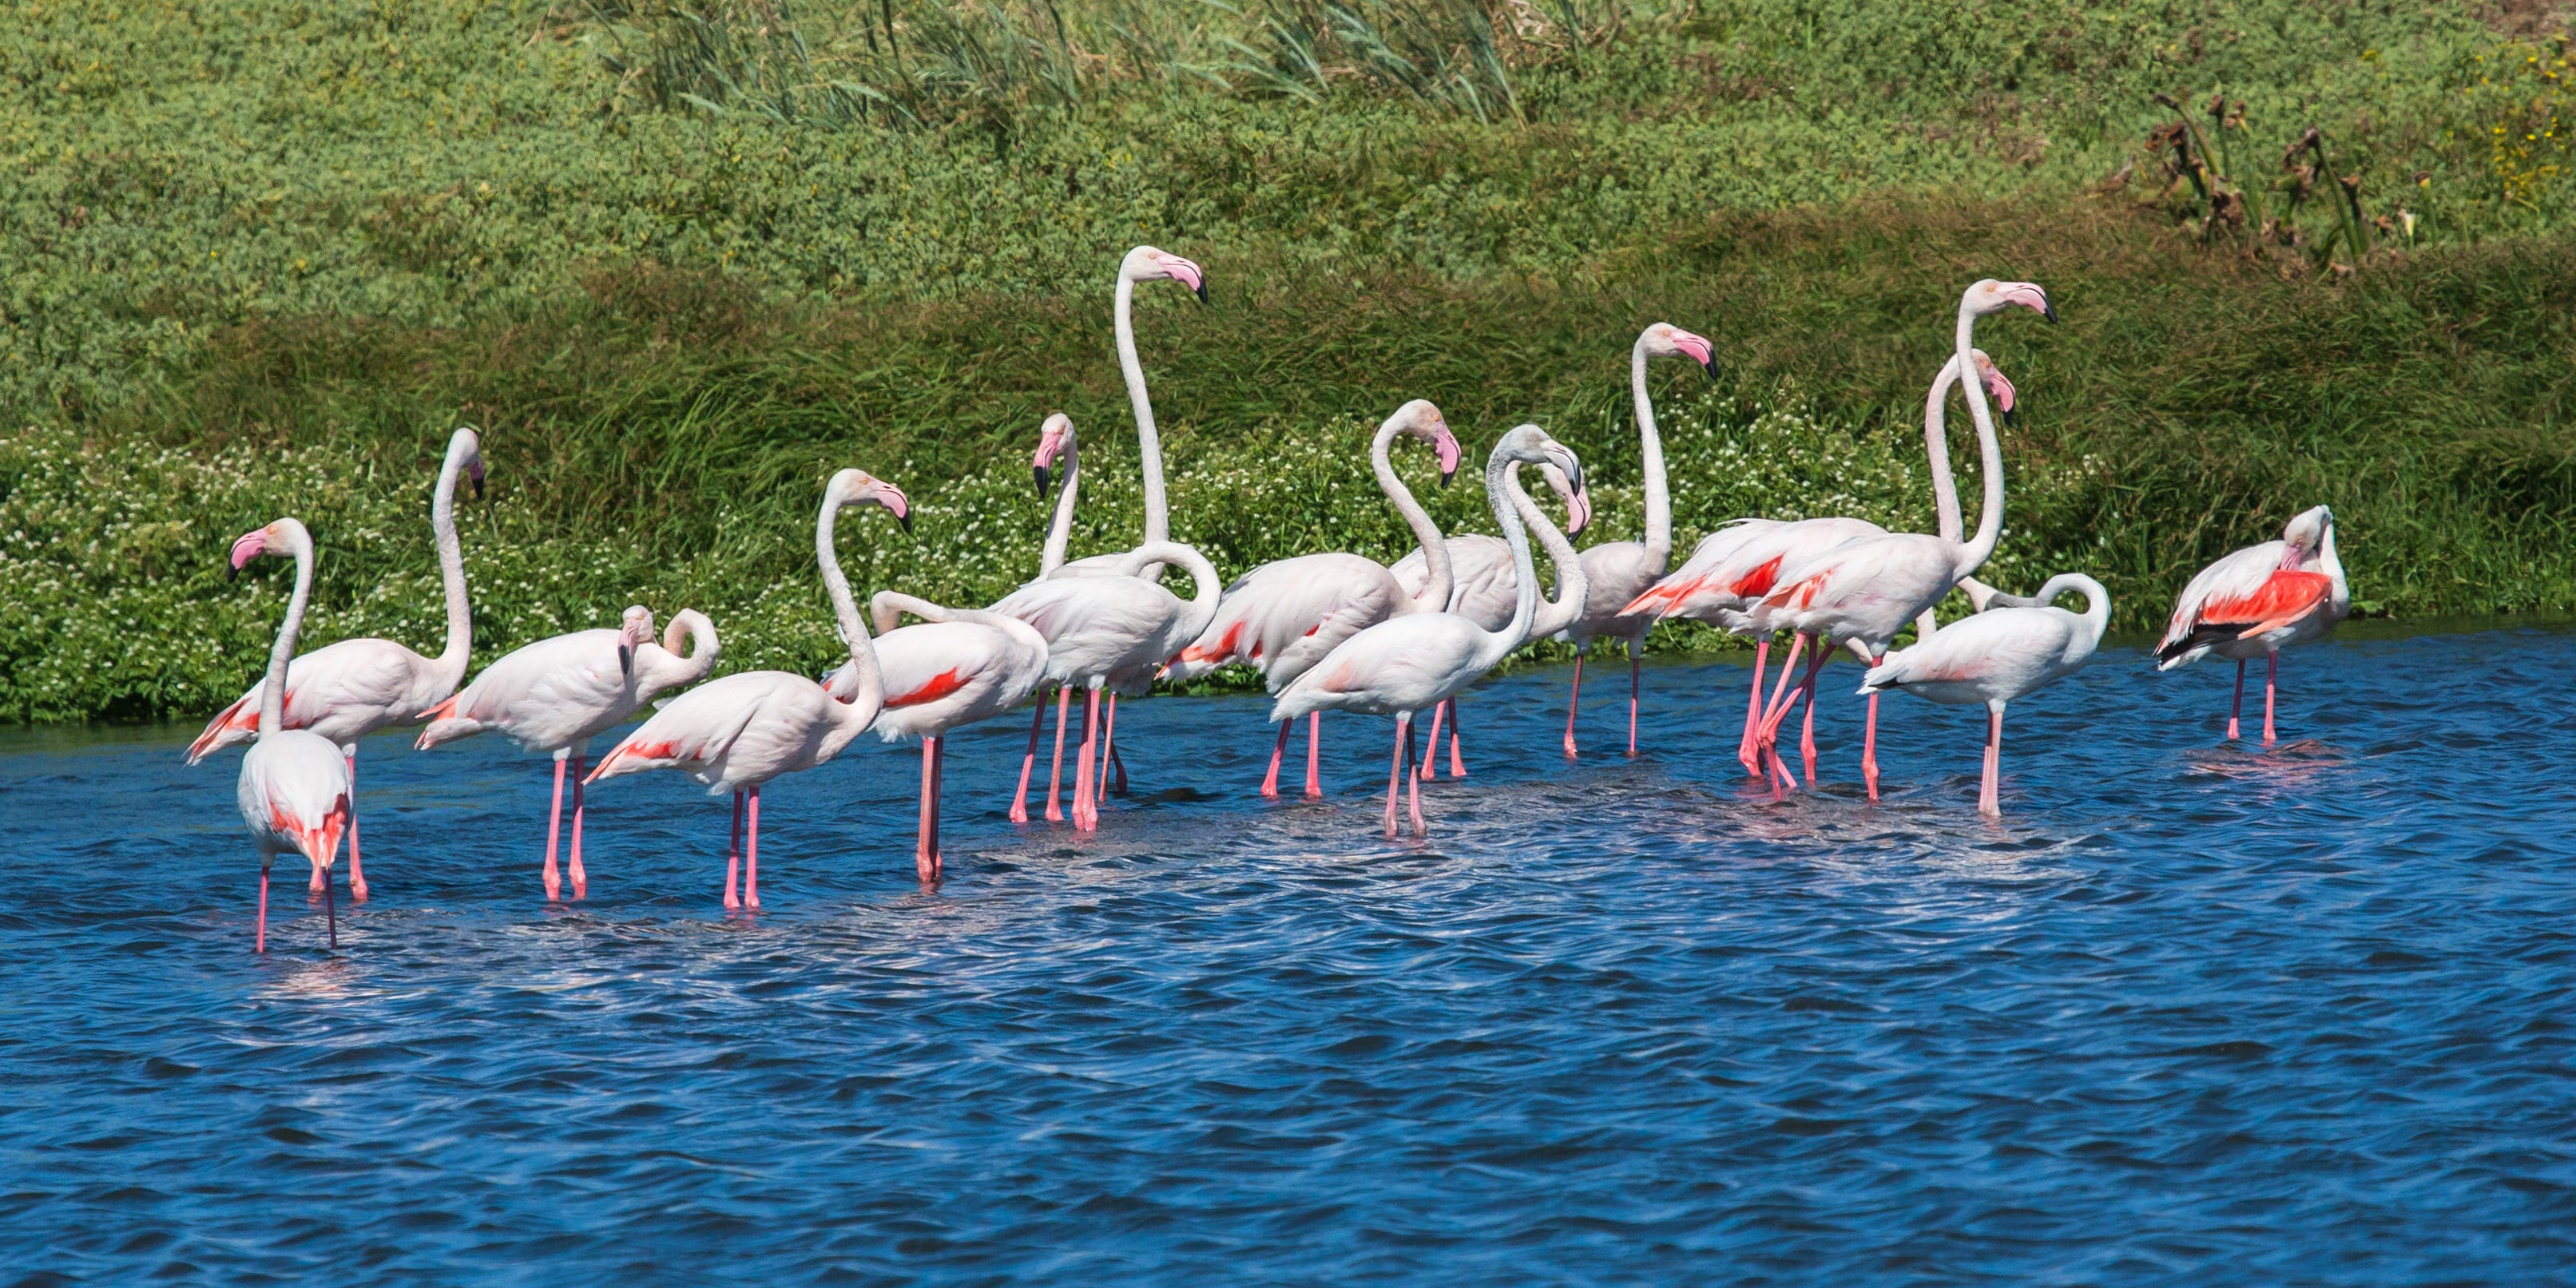 Flock of Flamingos in Body of Water